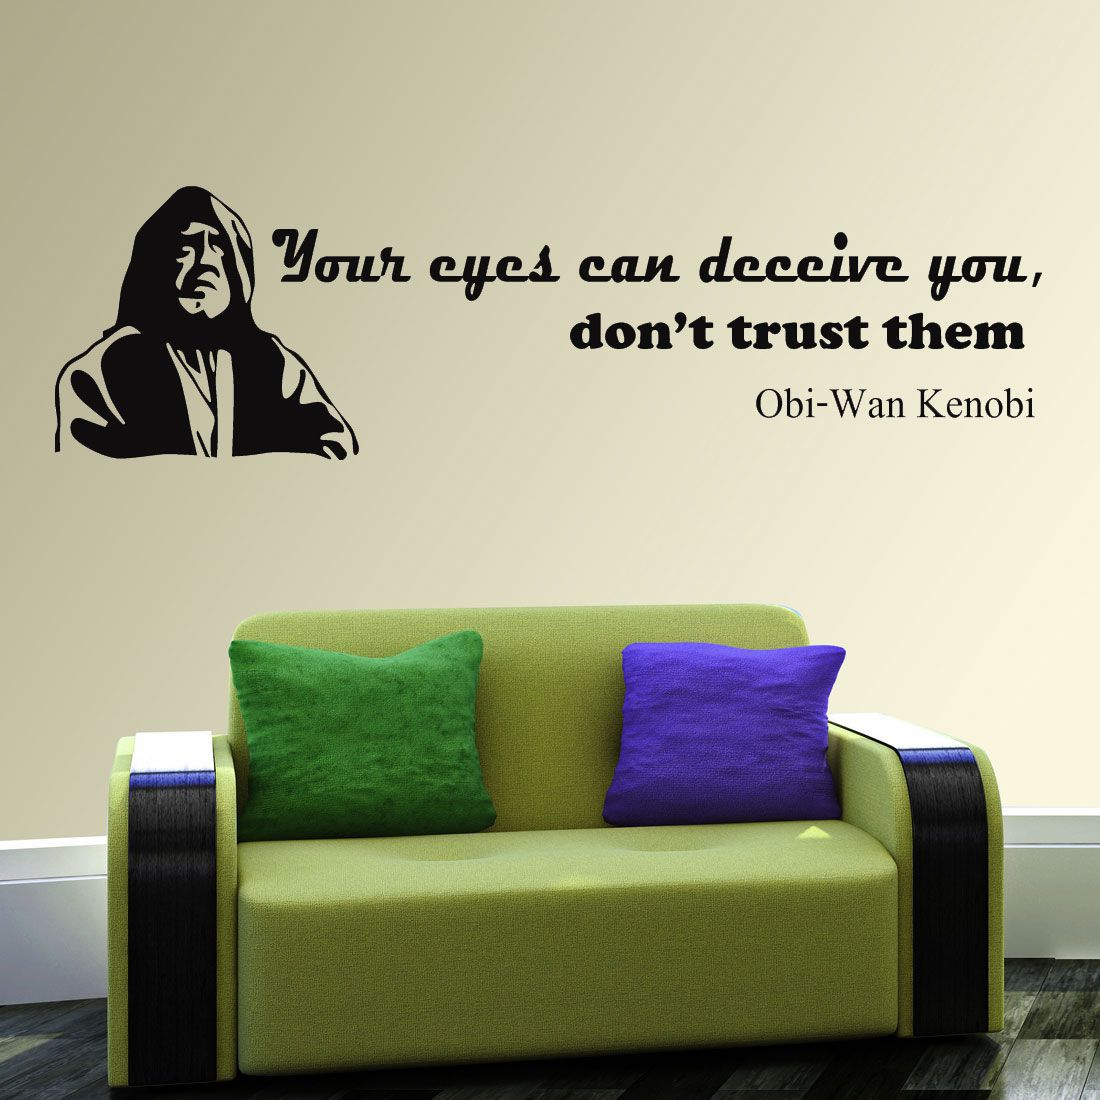 walkart quotes of eyes can deceive you dont trust Motivational Quotes Motivational Quotes PVC Sticker